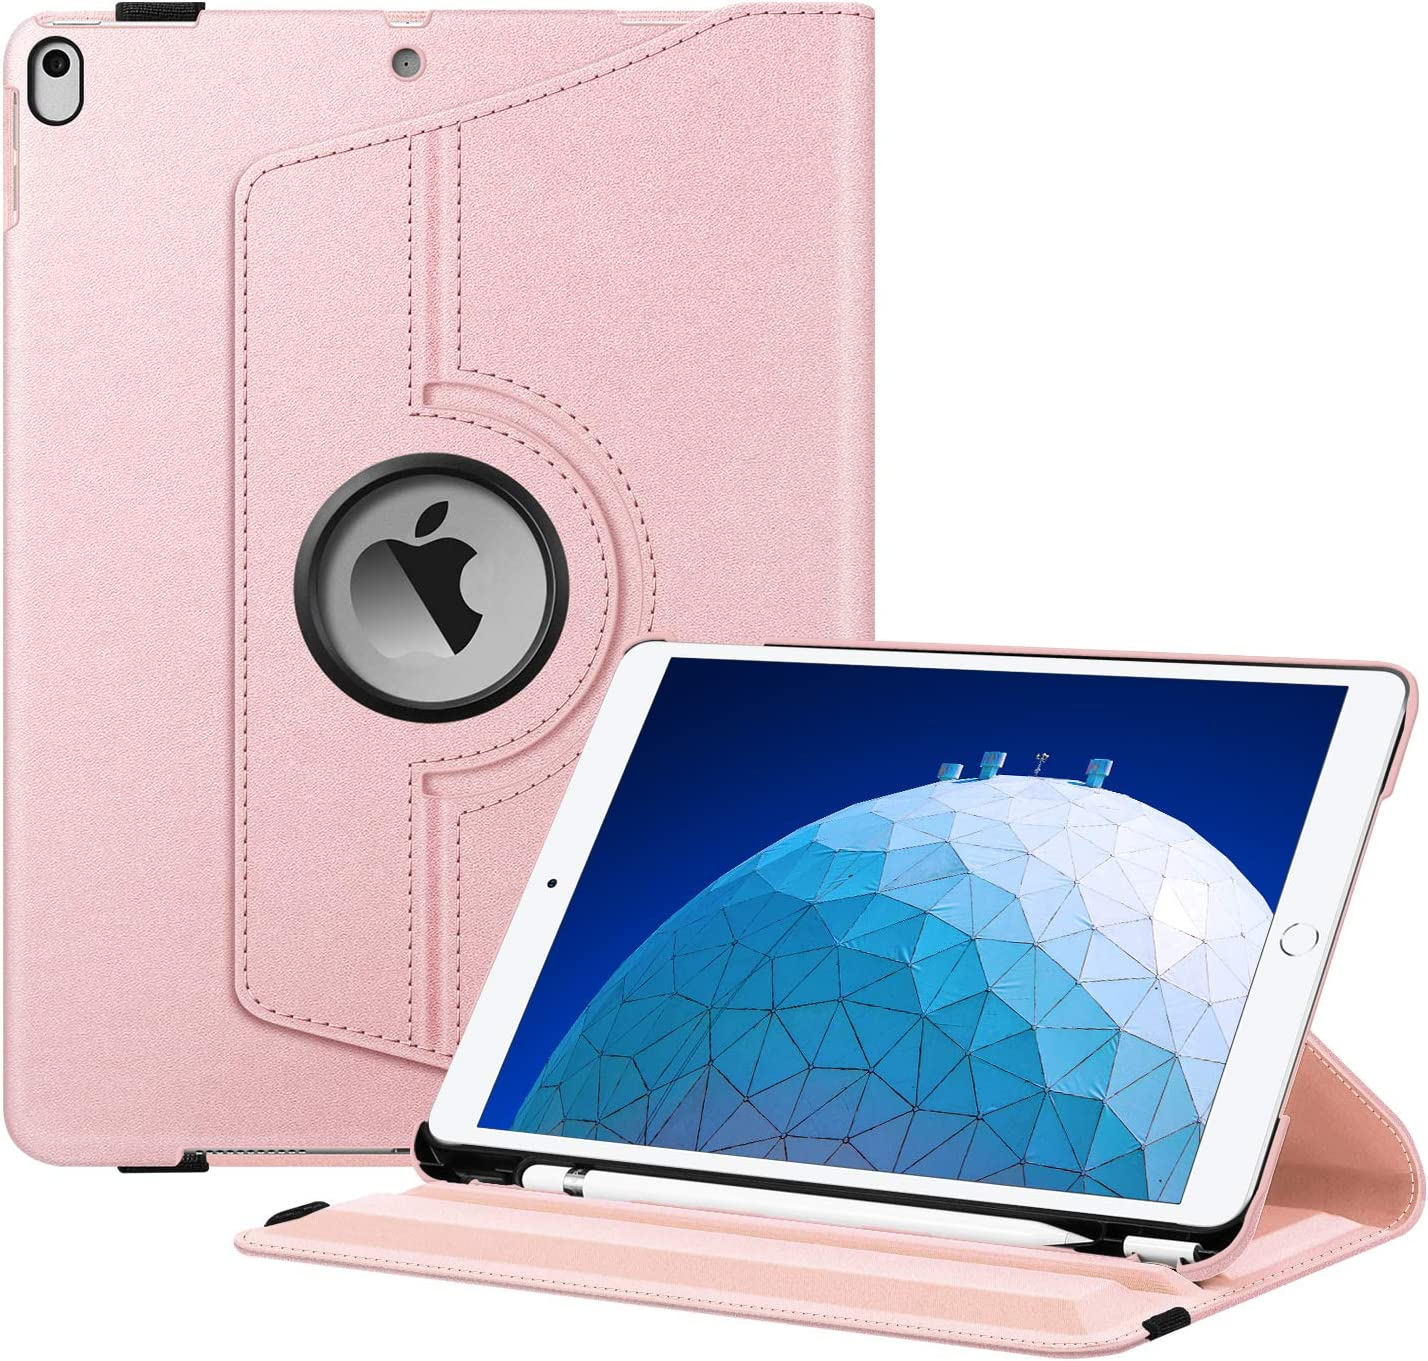 "Fintie Rotating Case for iPad Air (3rd Gen) 10.5"" 2019 / iPad Pro 10.5"" 2017-360 Degree Rotating Stand Protective Cover with Built-in Pencil Holder, Auto Sleep/Wake (Rose Gold)"